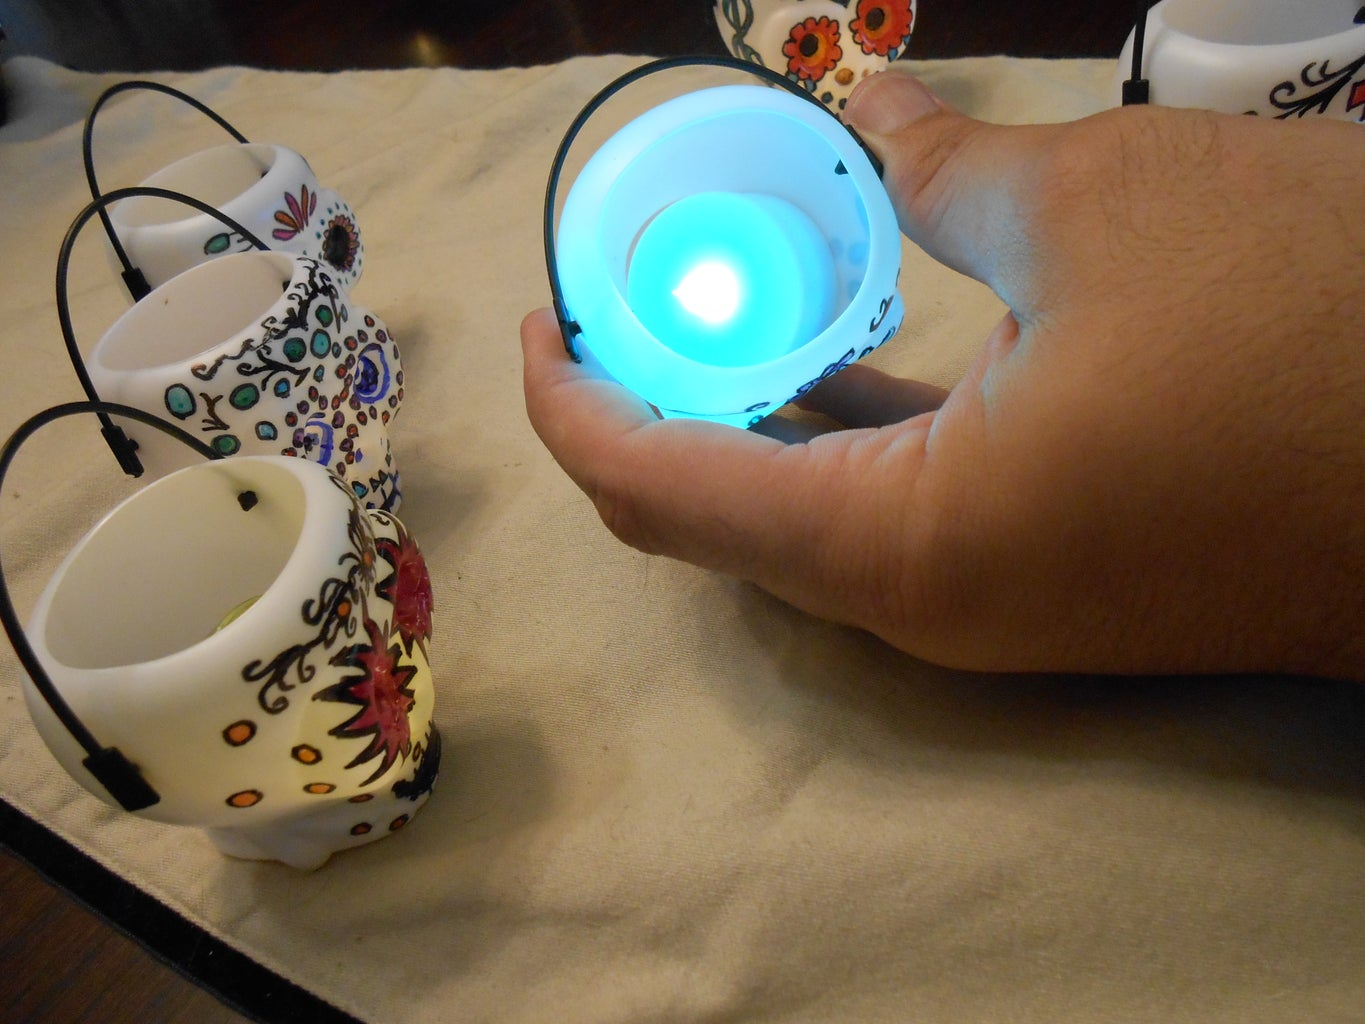 Placing the LED Tealight